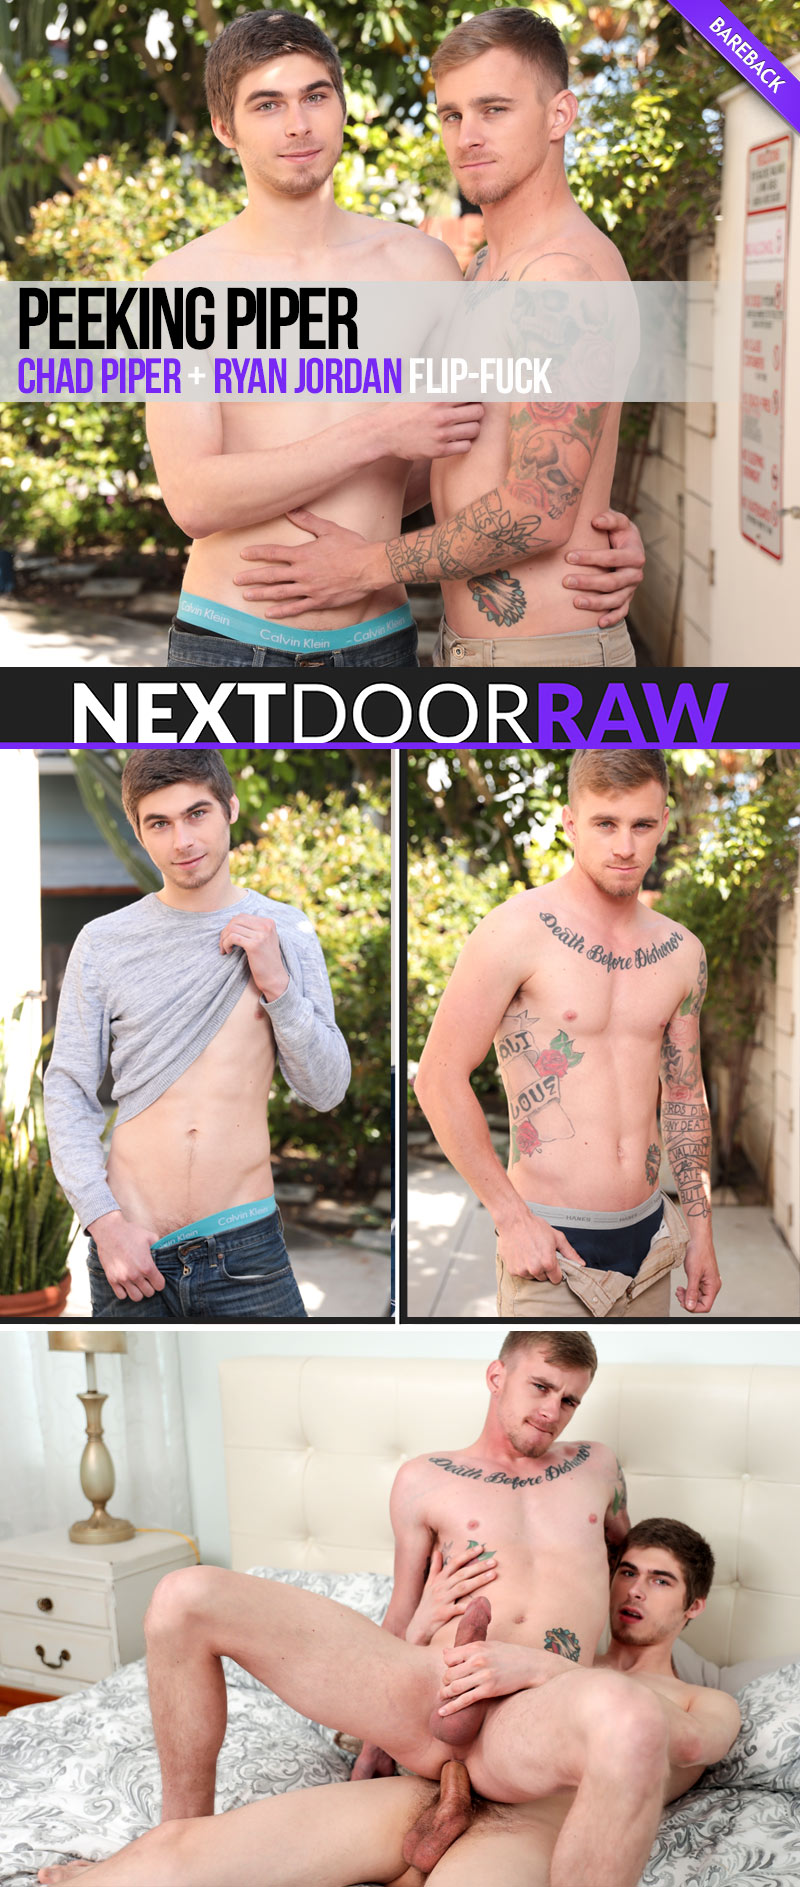 Peeking Piper (Chad Piper and Ryan Jordan Flip-Fuck) at NextDoorRAW!